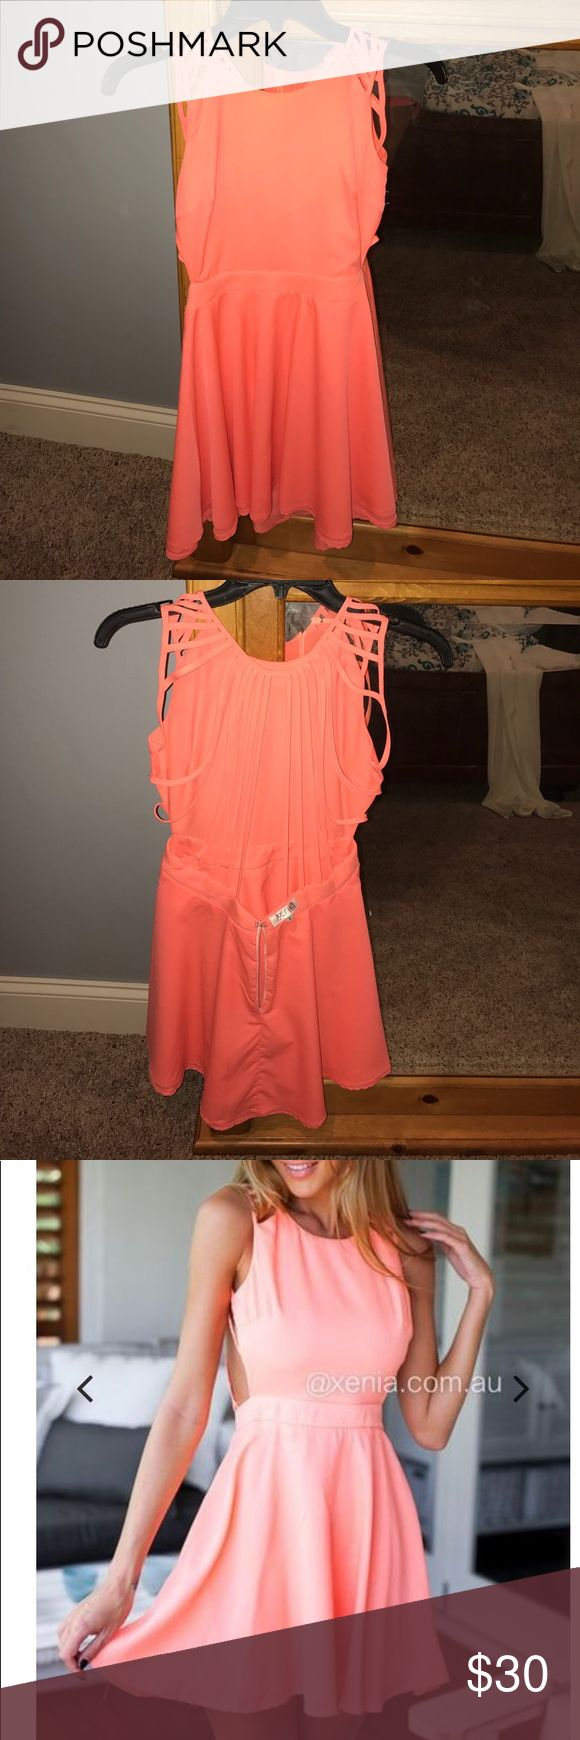 Coral open back dress Good material. The color is really nice and it fits super well. It's a small and fits me perfectly I'm 5'4 and 130lbs. It's not super short so no worries! Selling it for $10 less than original price. Only worn once! Ps it says it's an 8 only because it's from Australia. It's a six here in the US Xenia Boutique Dresses Backless